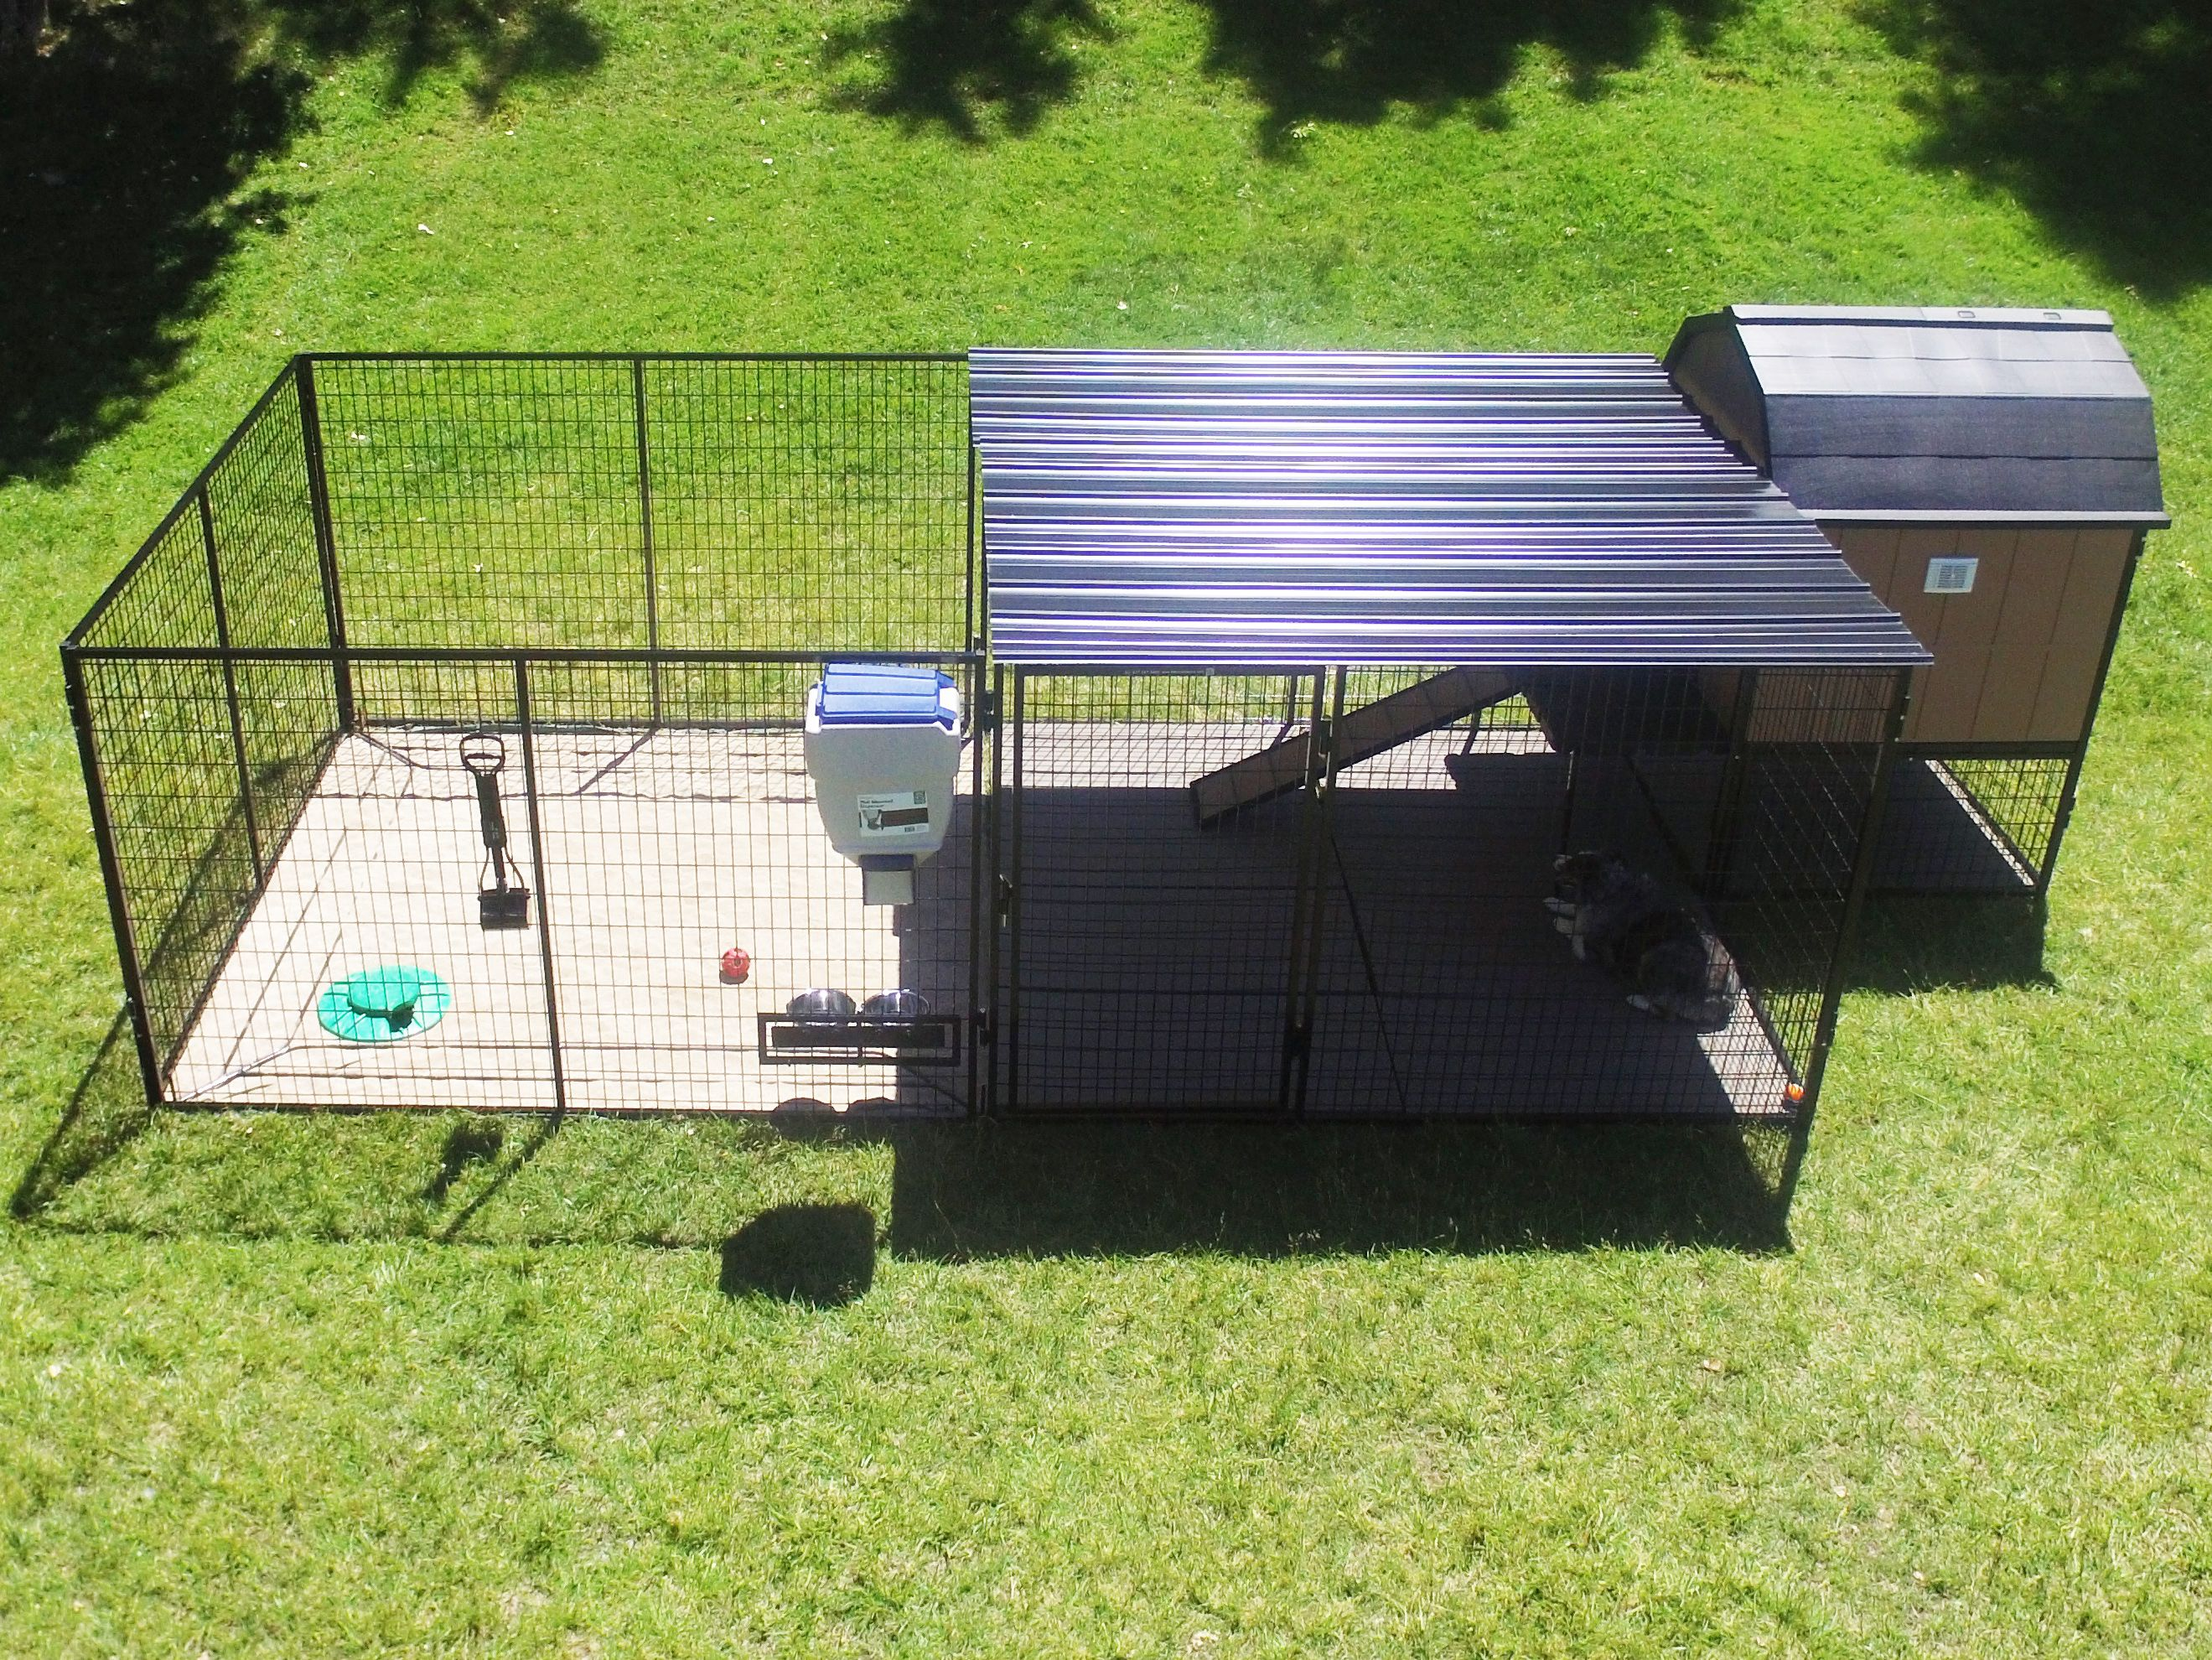 The Ultimate Dog Kennel Is Everything You Need In One Package This Kennel Includes Both Flooring And Metal Corrugate Outdoor Dog Dog Enclosures Diy Dog Kennel Outdoor dog kennel design ideas